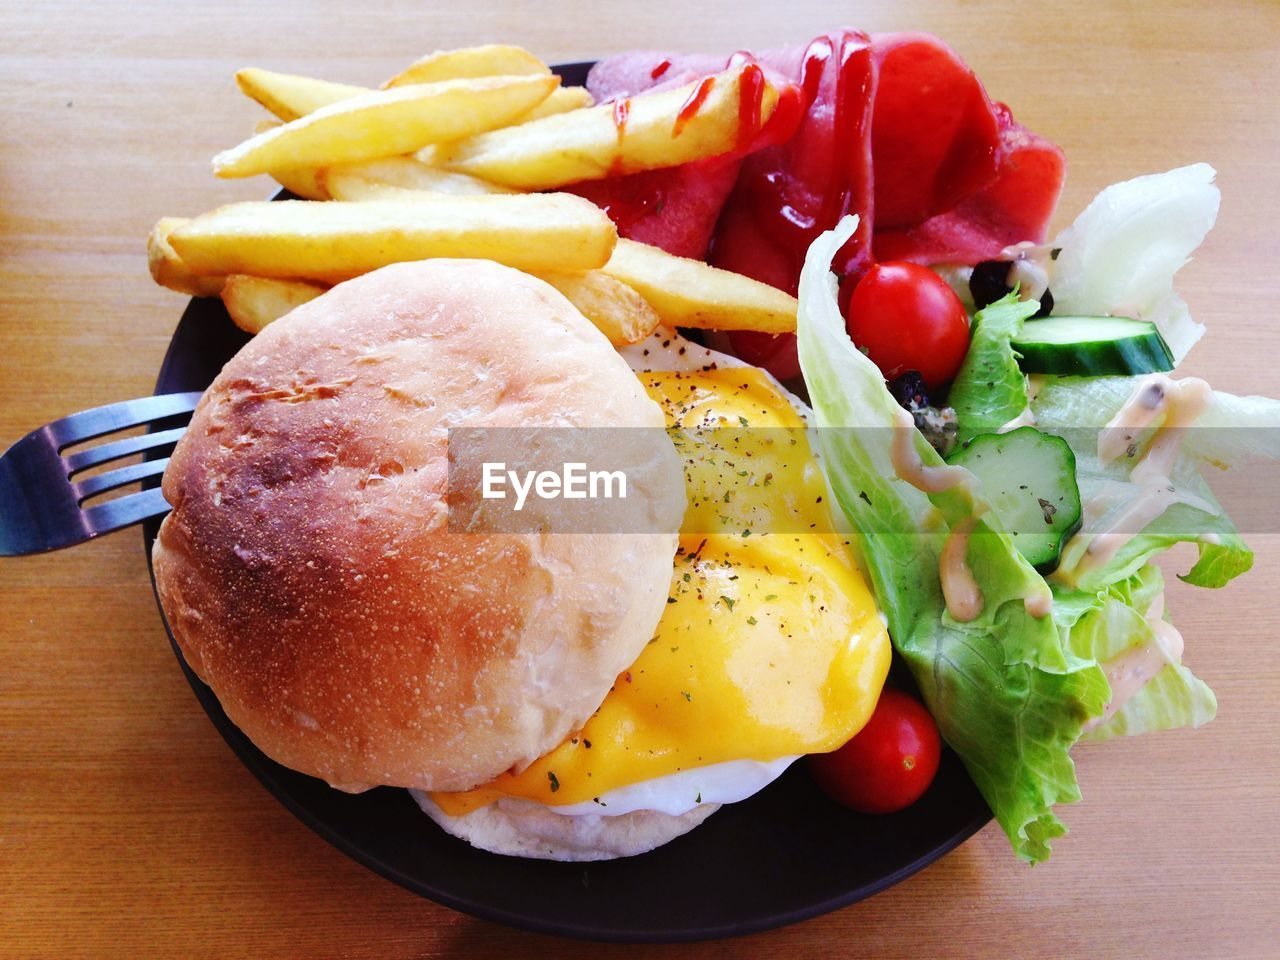 Burger With Fried Egg, French Fries And Salad